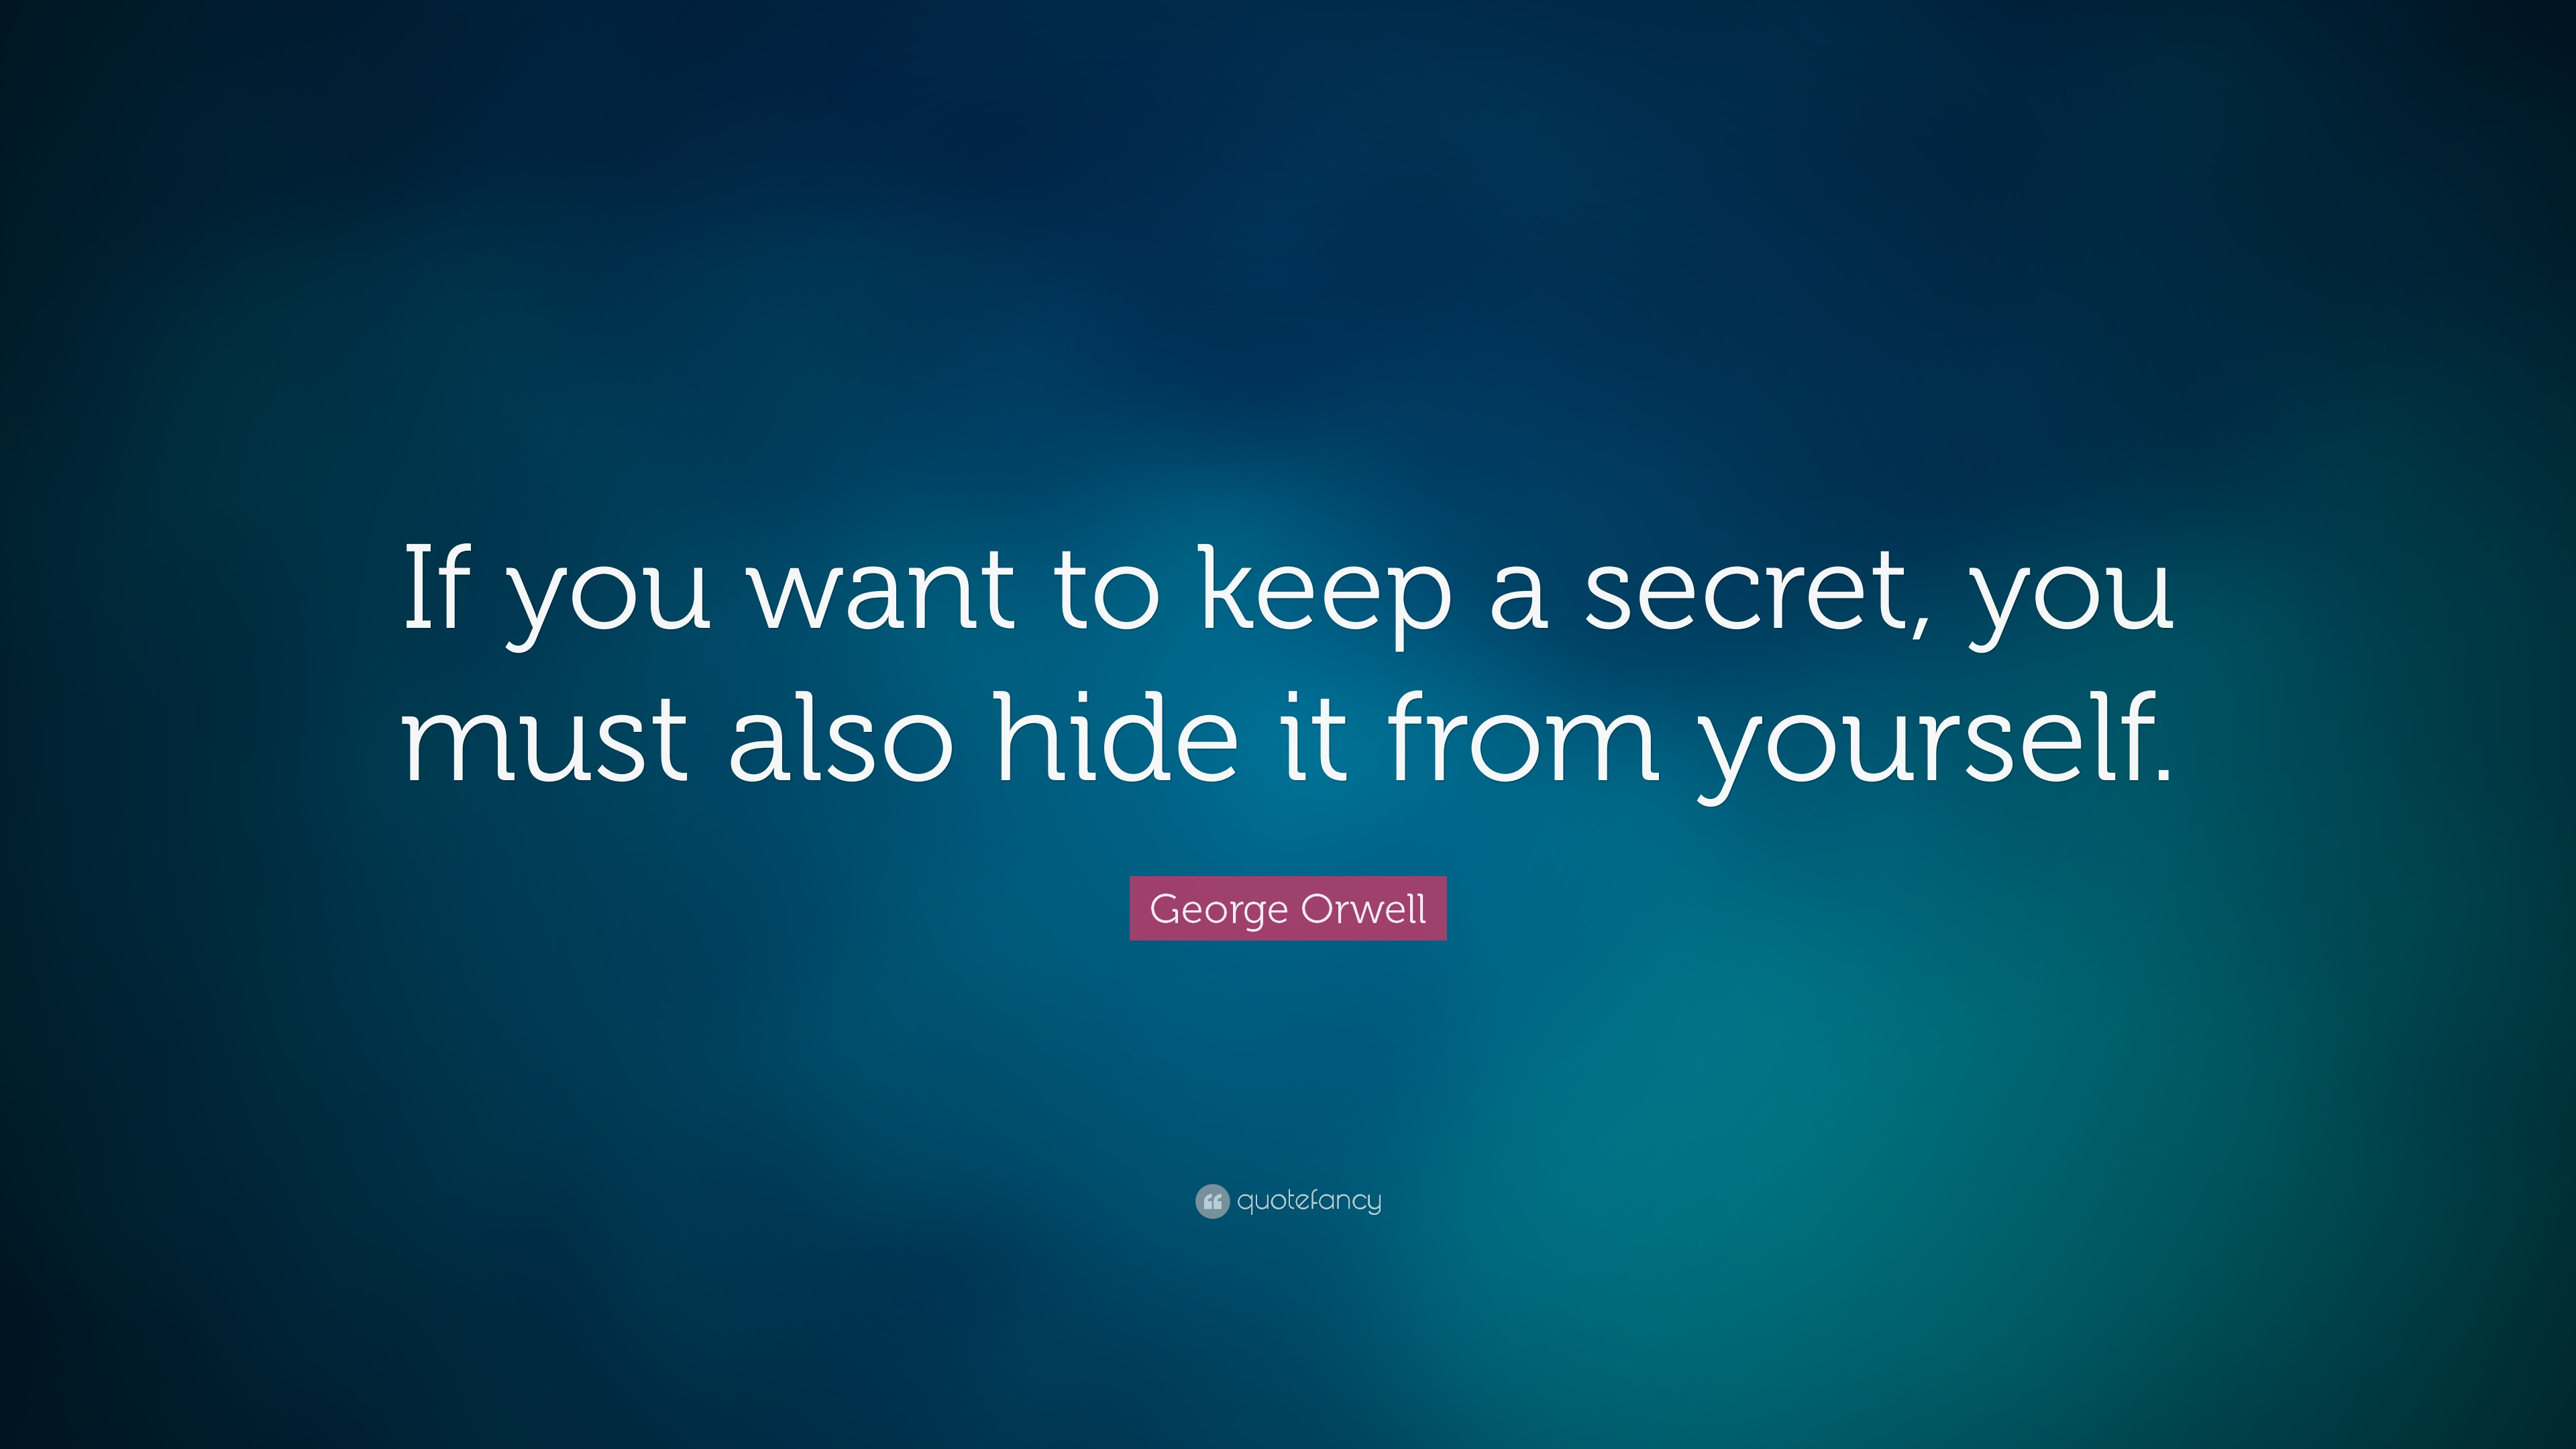 If You Want To Keep A Secret, You Must Also Hide It From